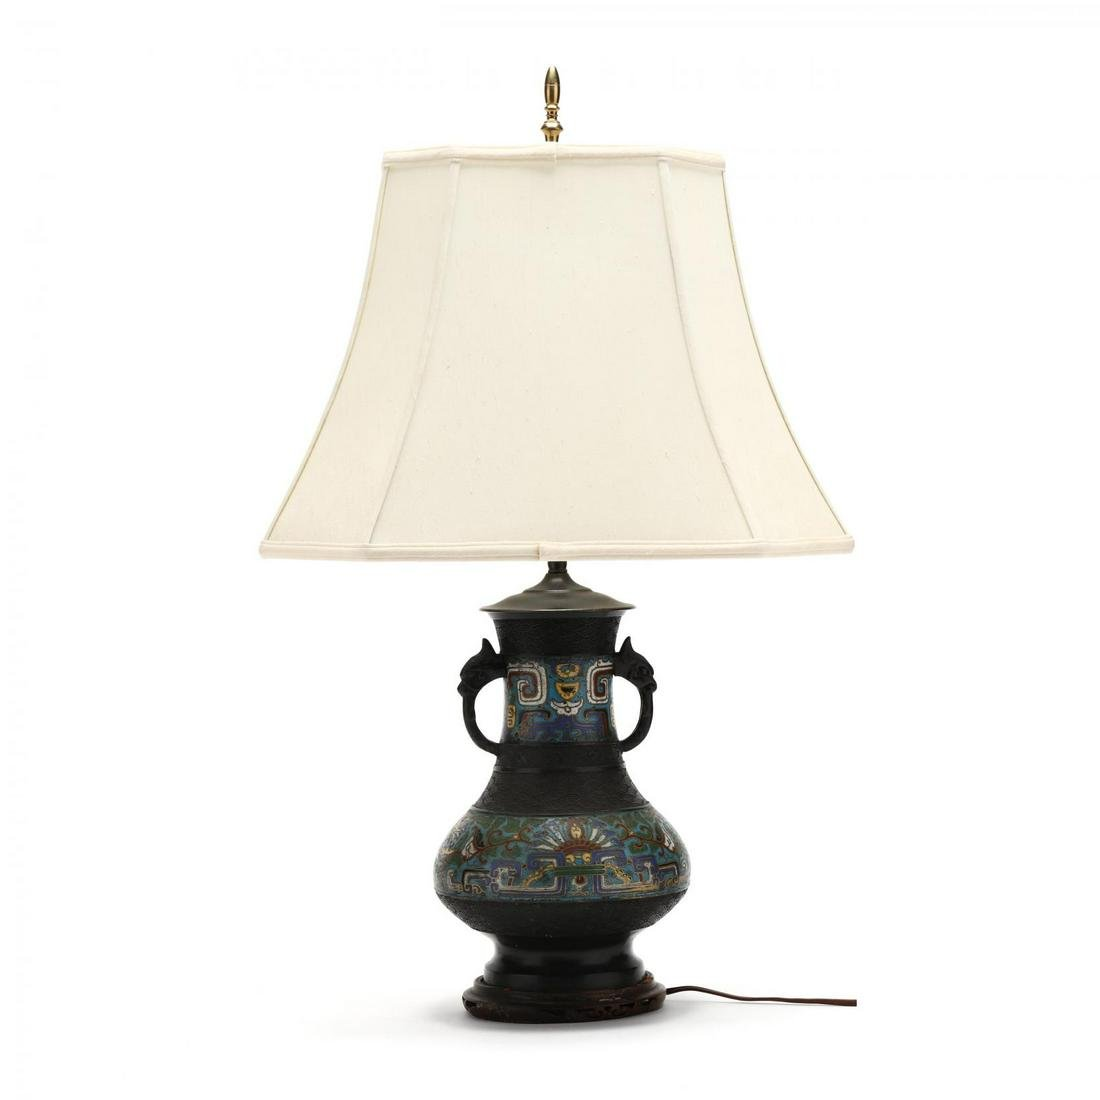 A Vintage Japanese Champleve Table Lamp